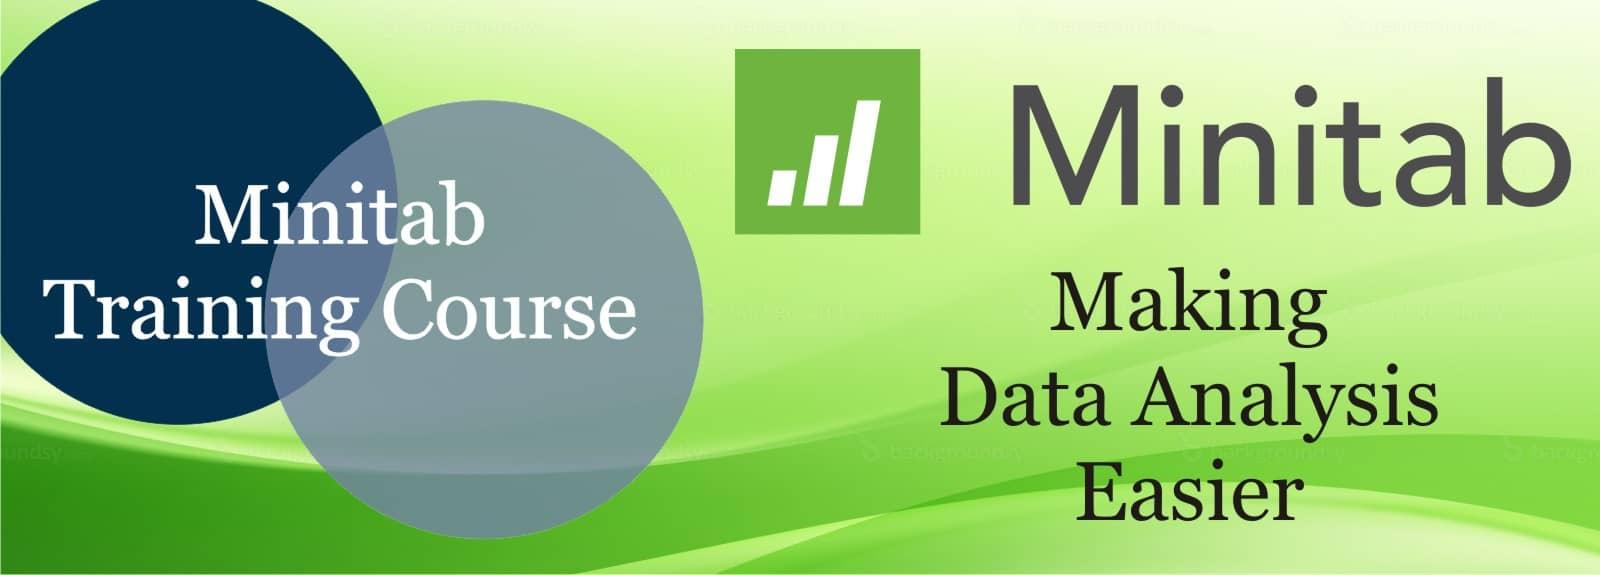 Minitab Training Course